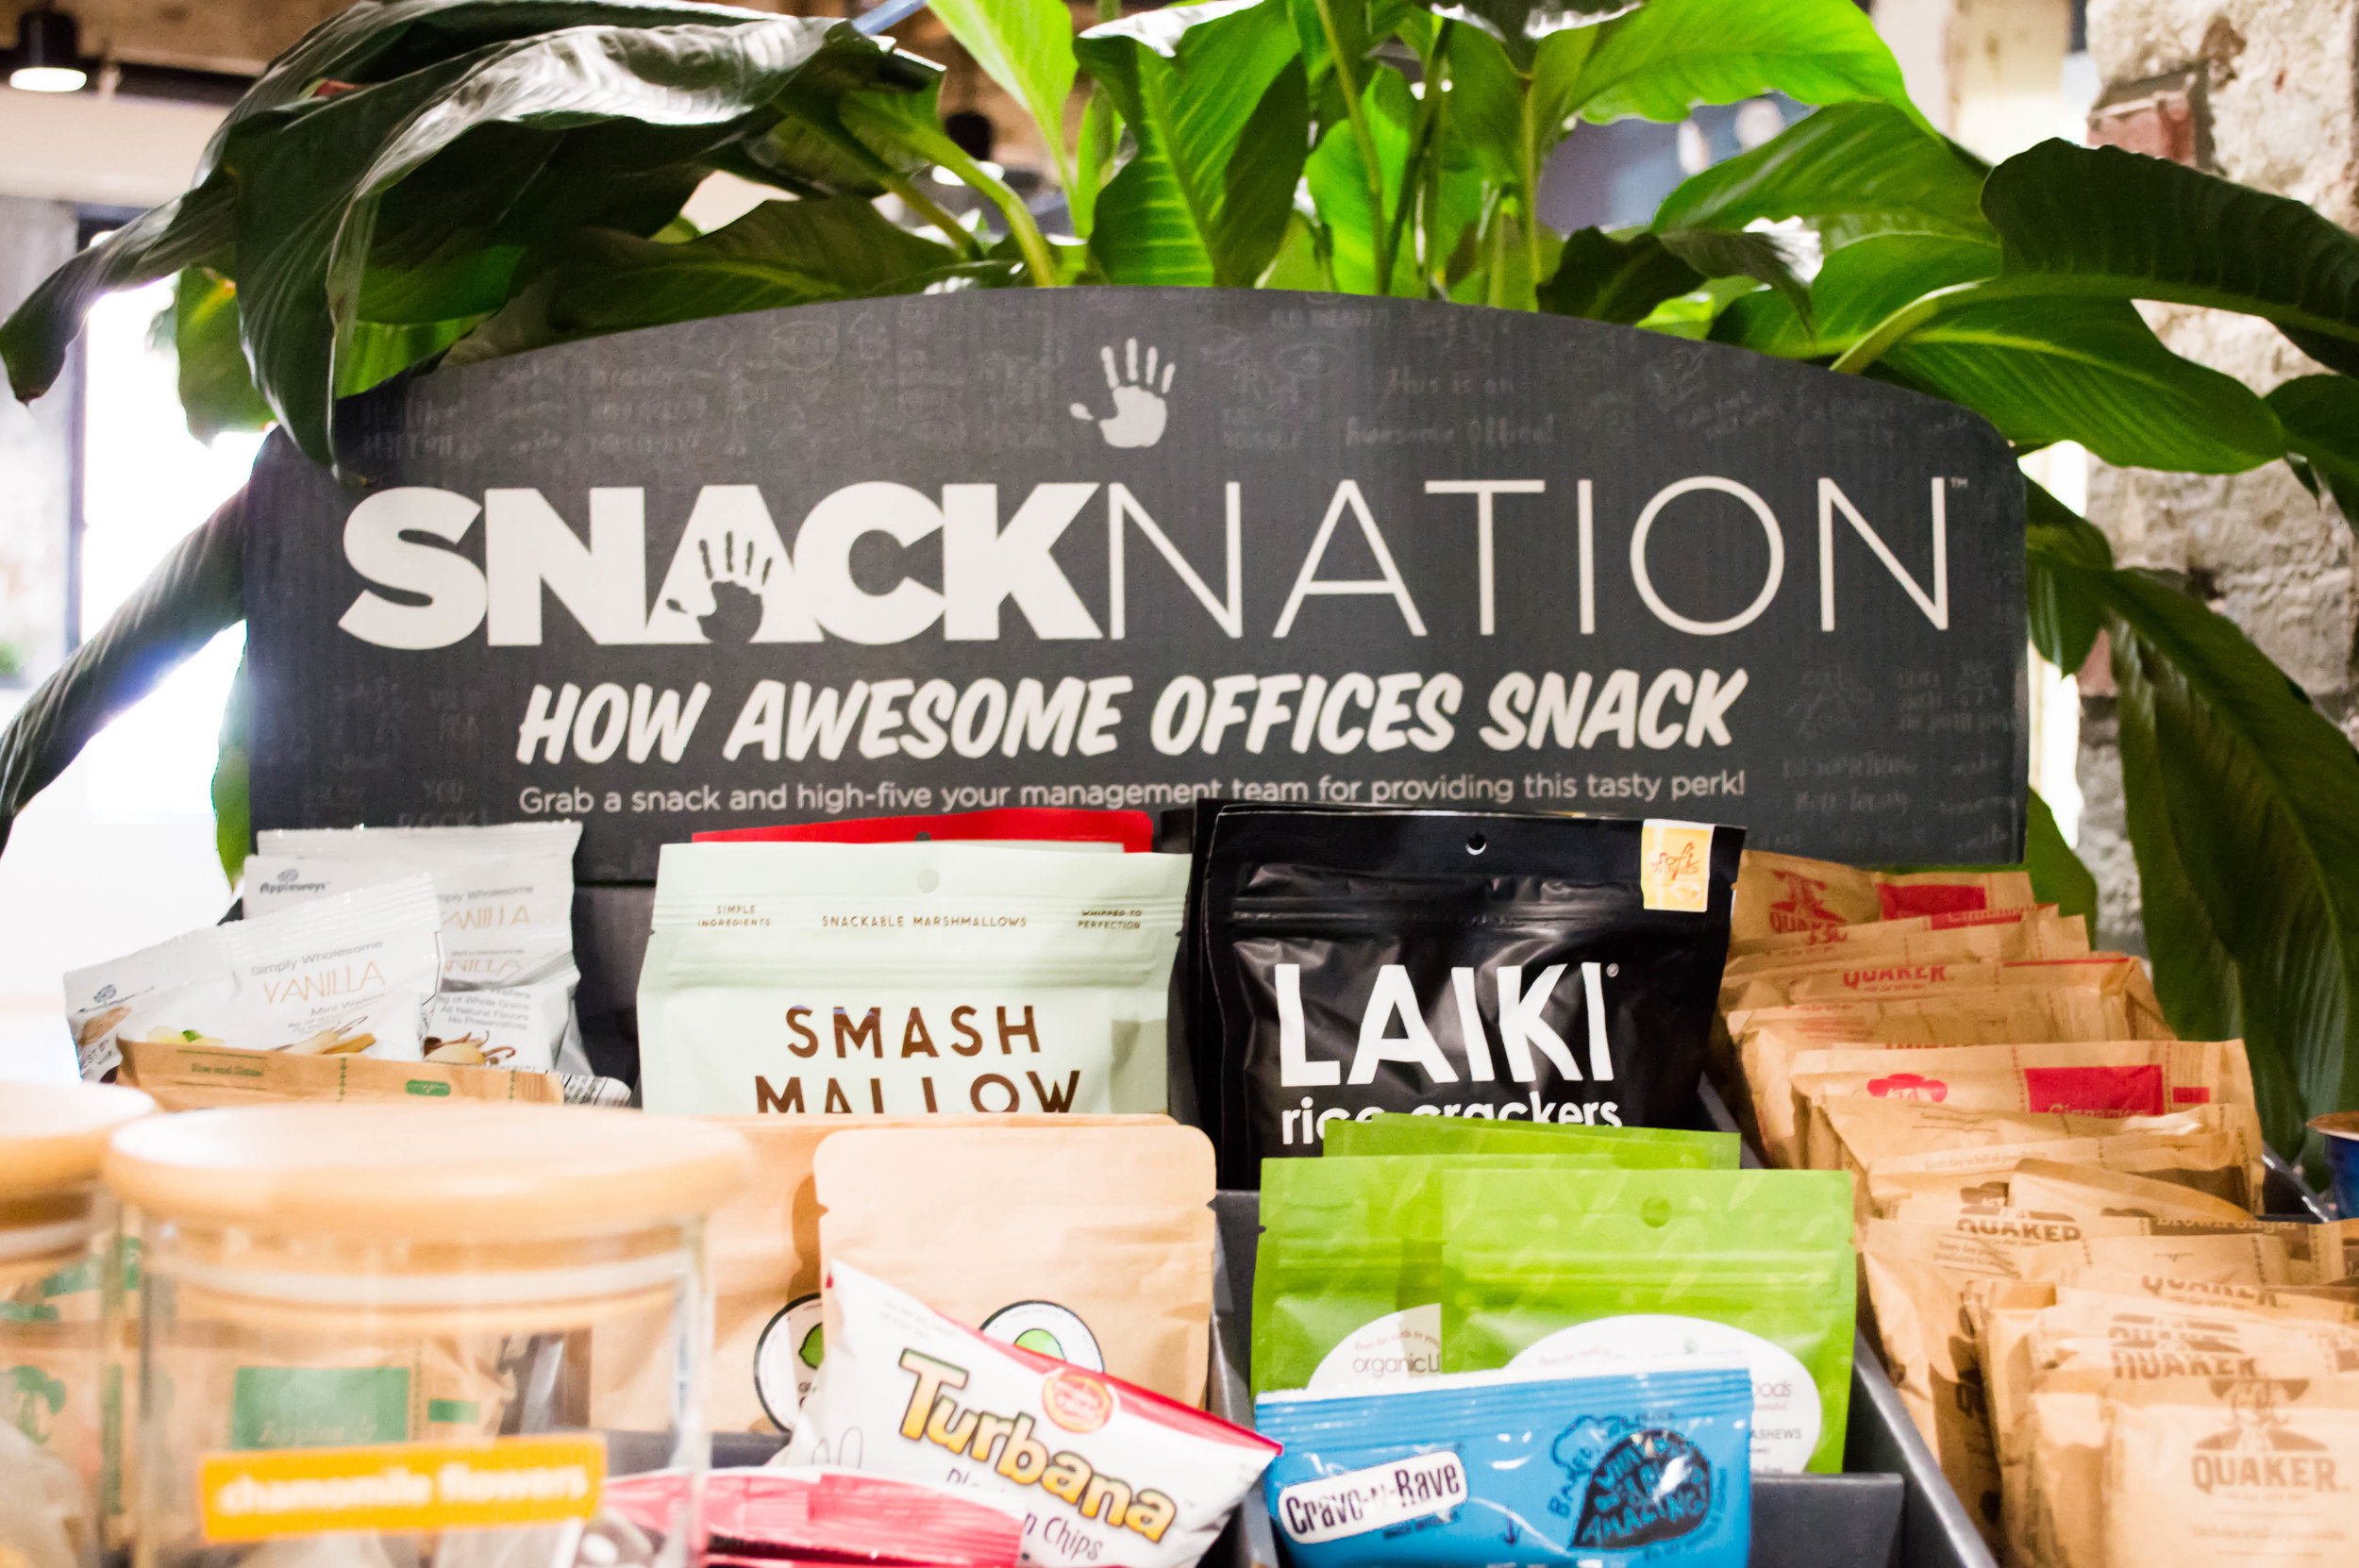 Snack display from Snack Nation